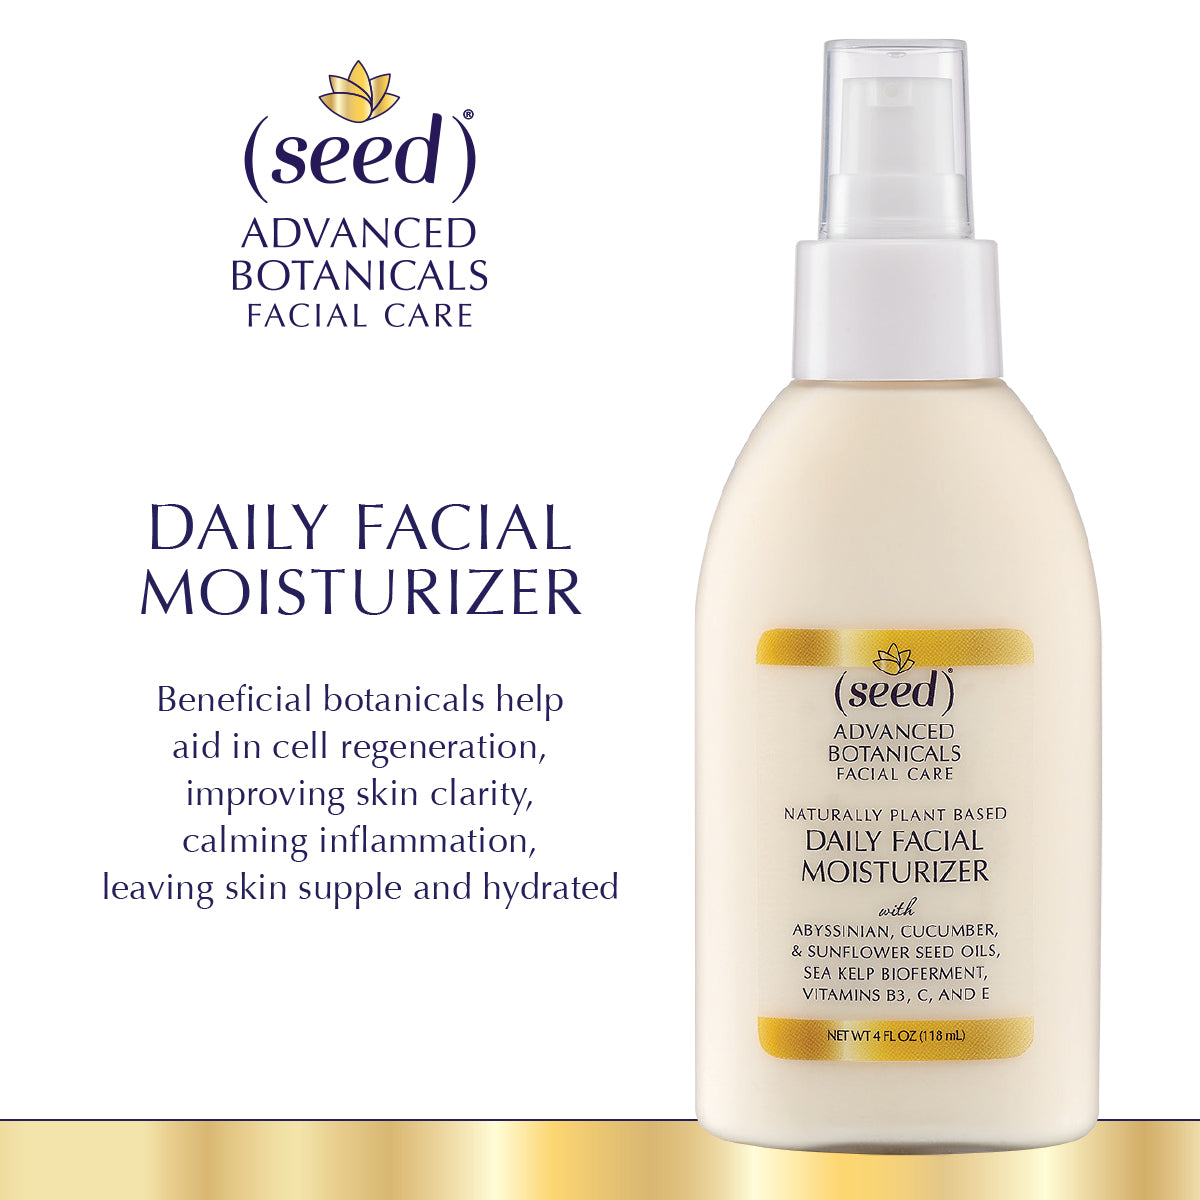 Seed Advanced Botanicals Daily Facial Moisturizer skin care benefits